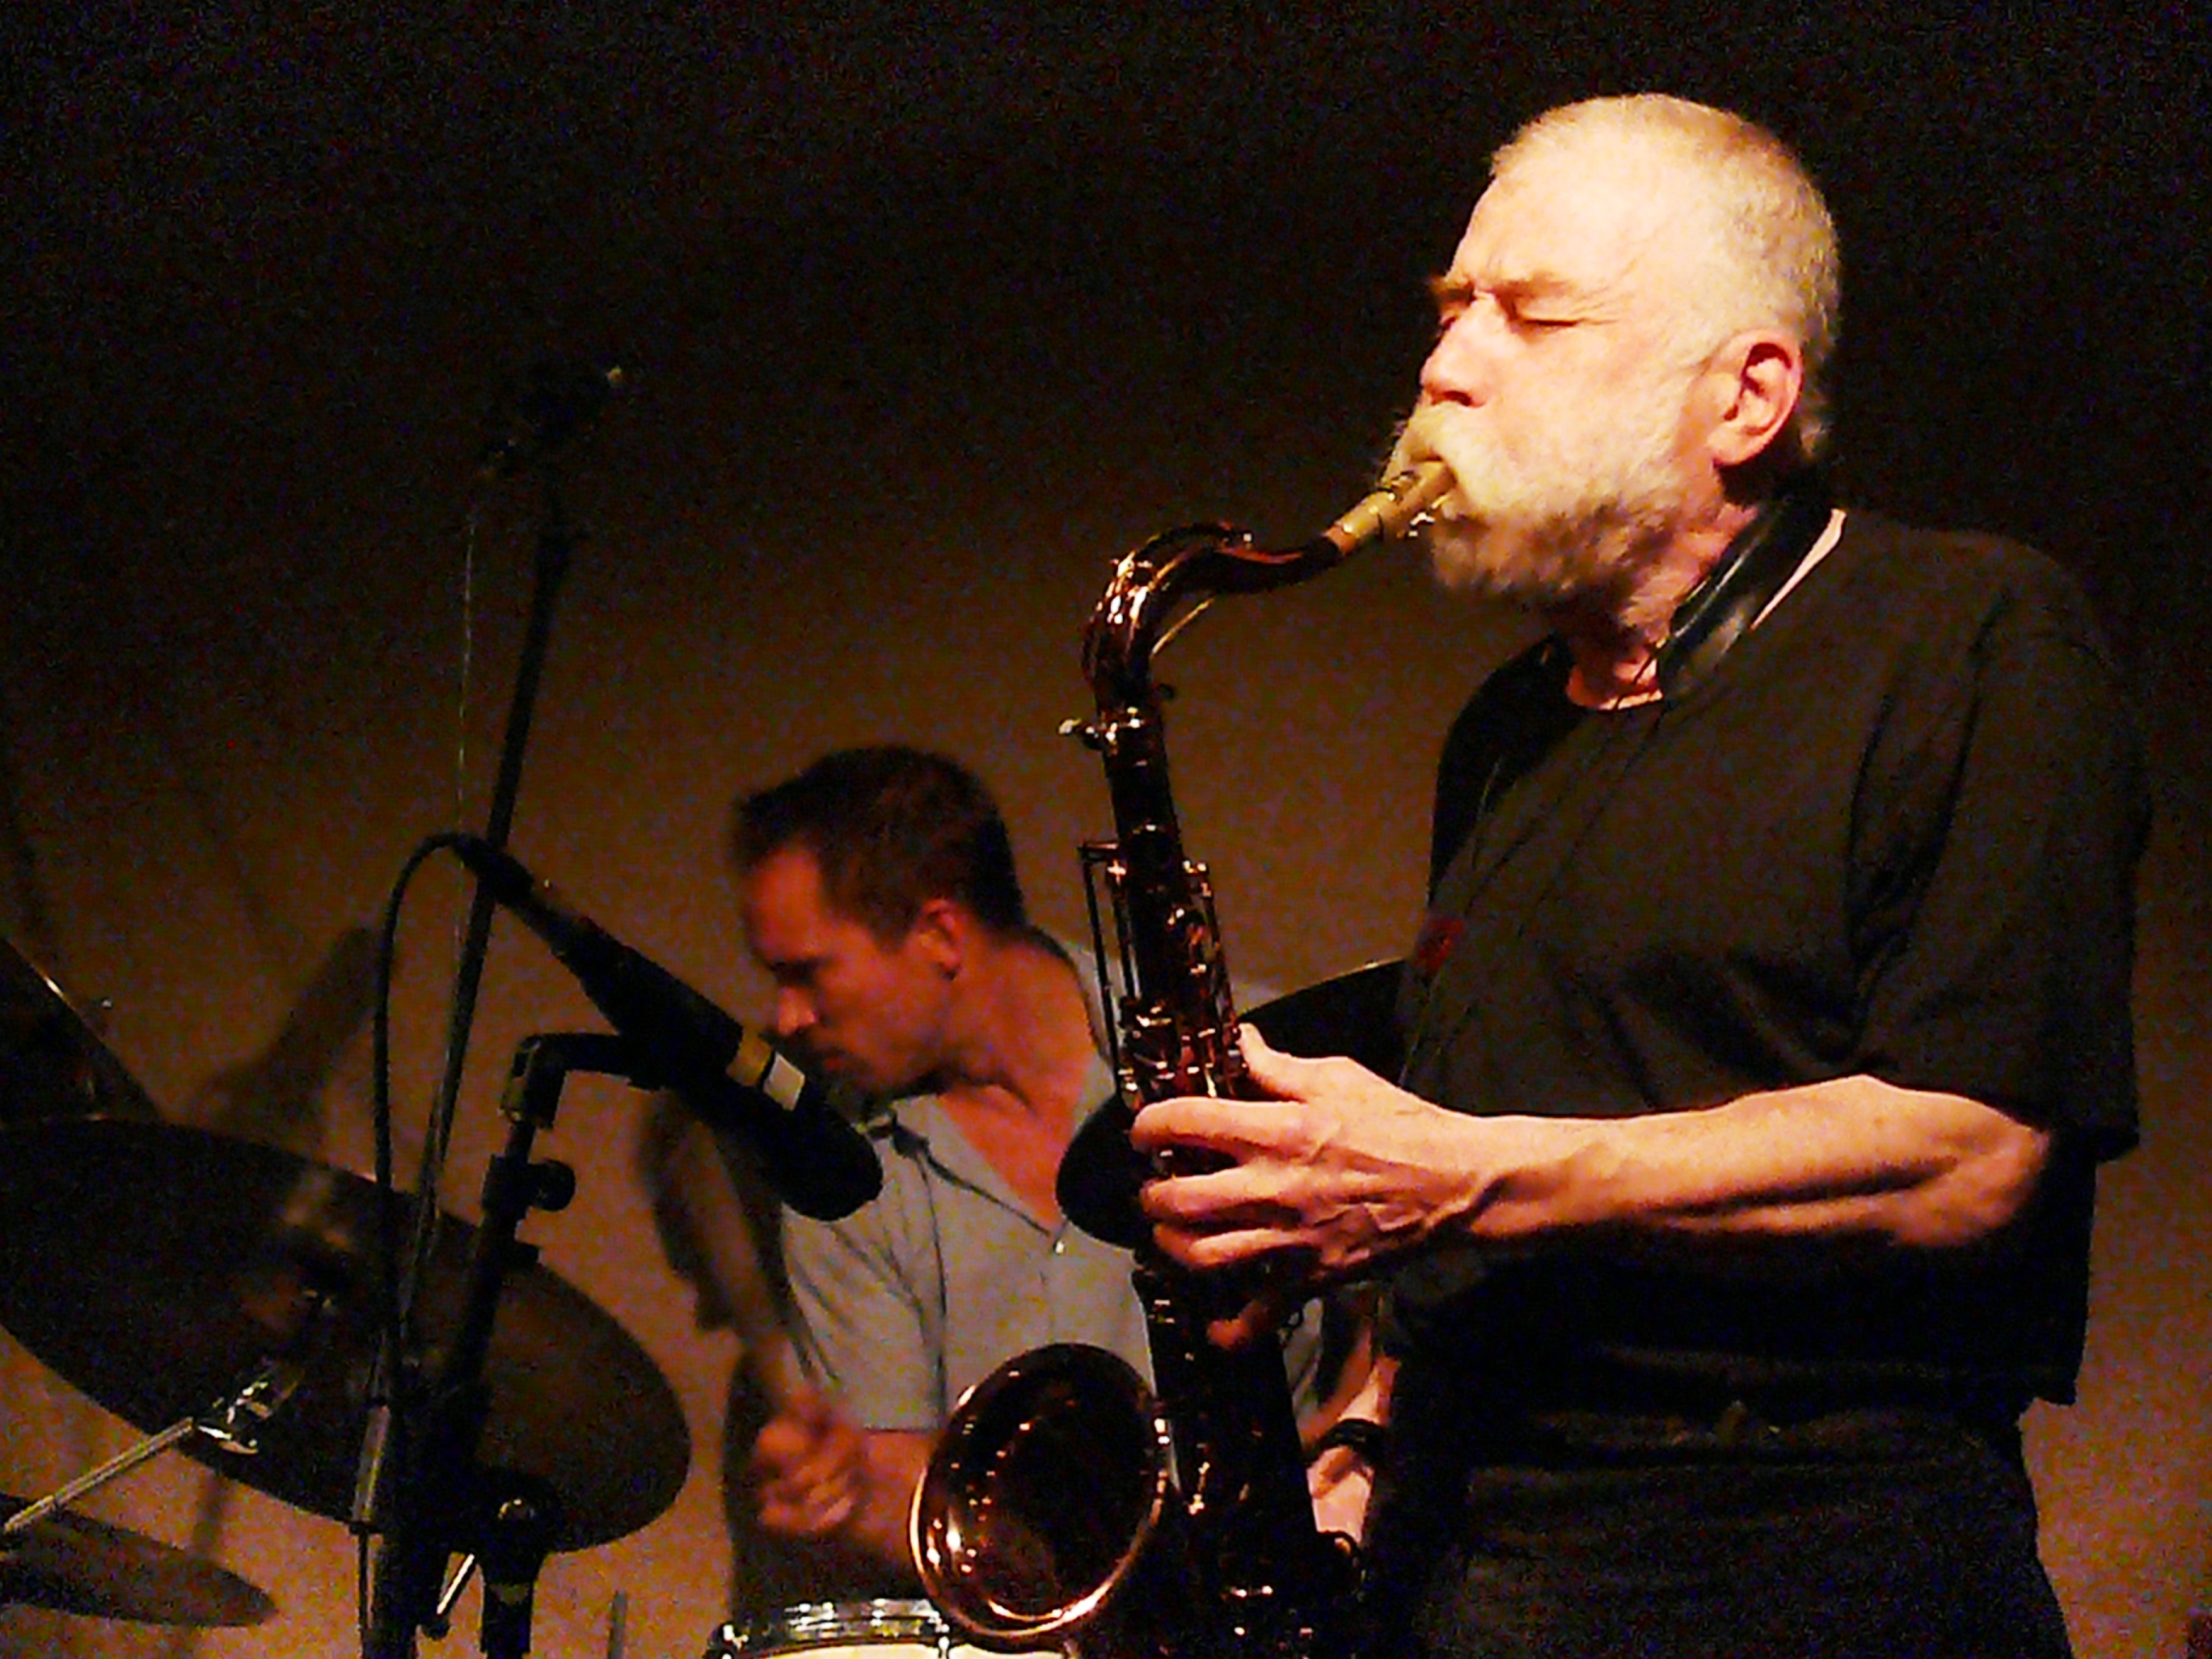 Paal Nilssen-Love and Peter Brotzmann at Cafe Oto, London in November 2012